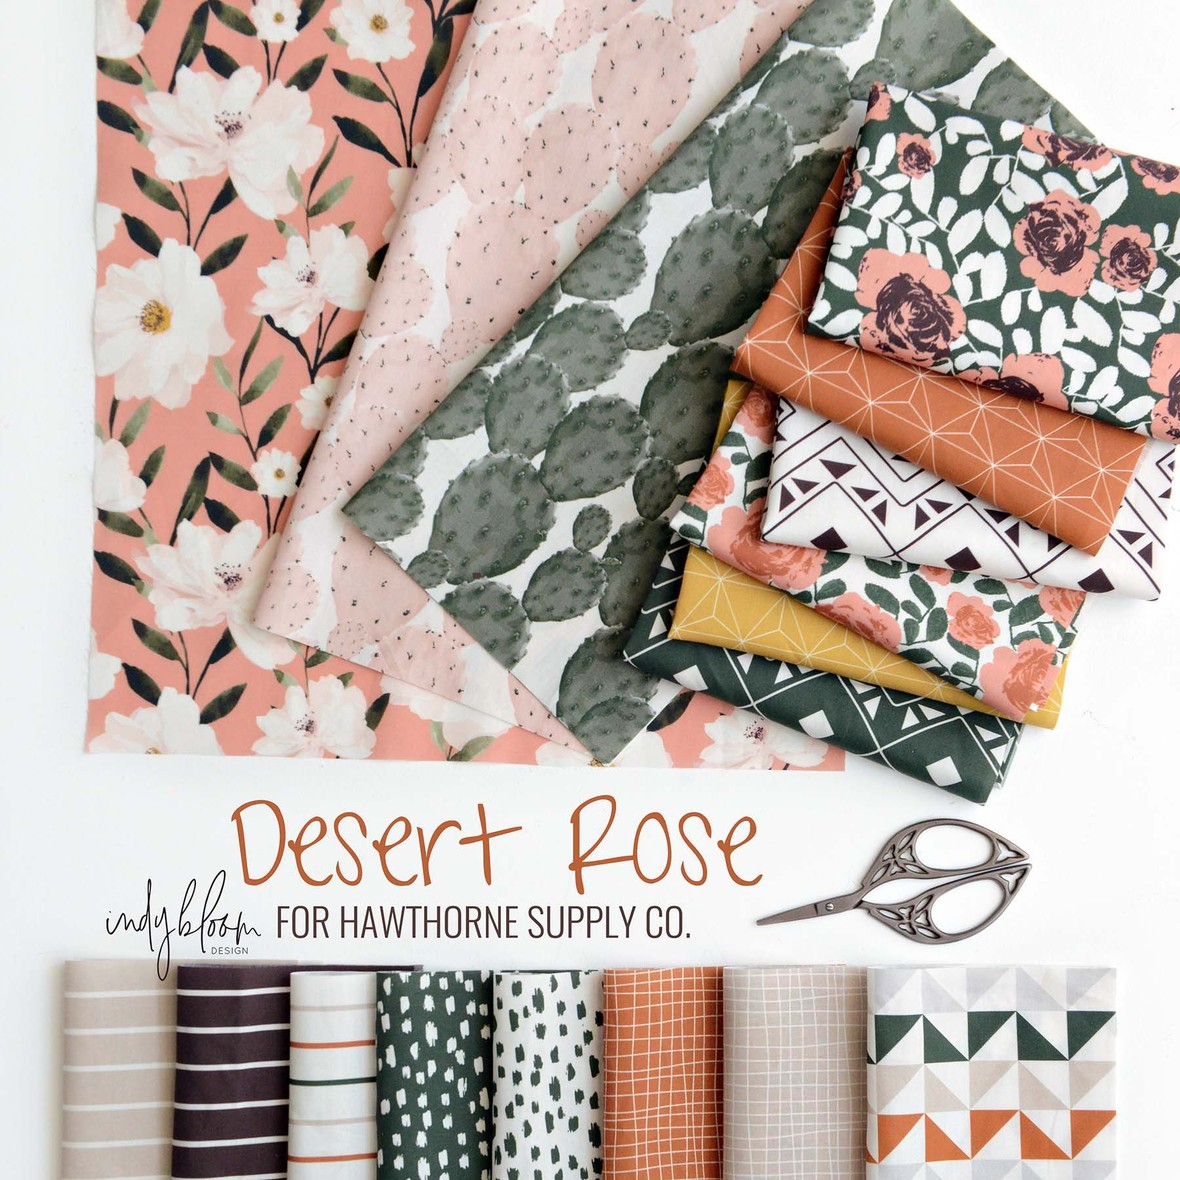 Desert Rose Fabric Indy Bloom for Hawthorne Supply Co.